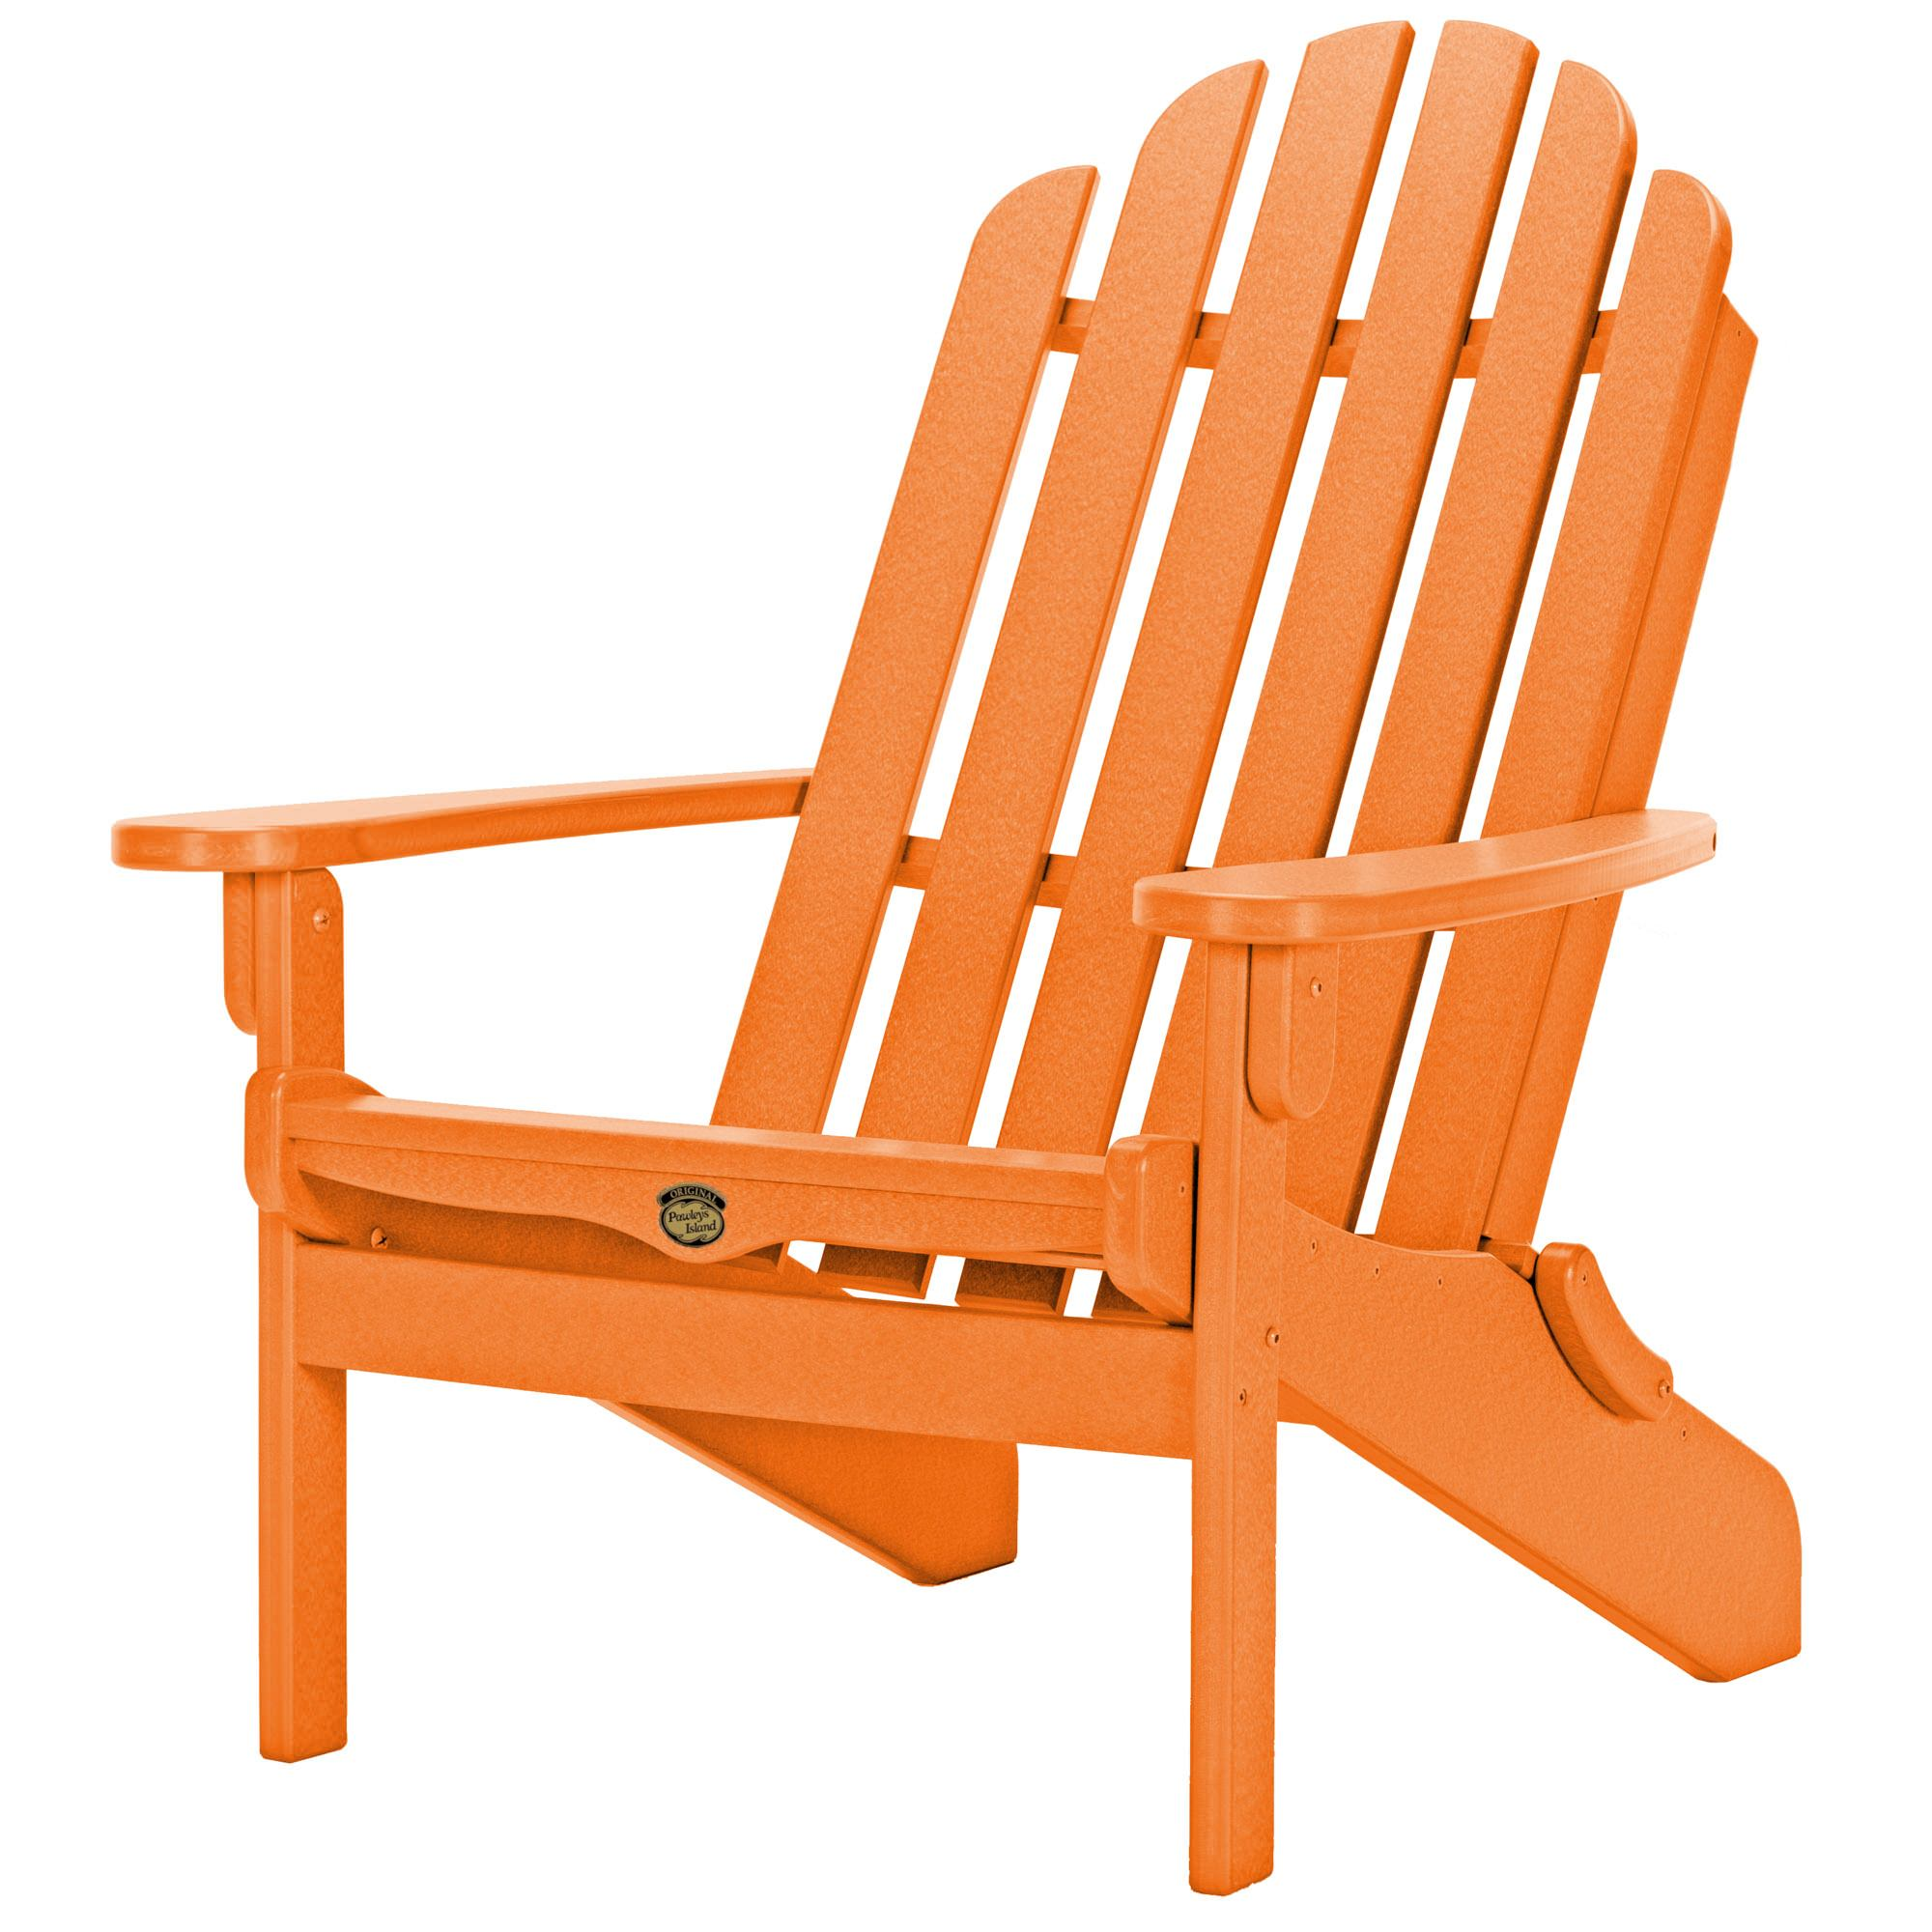 ... Essentials Folding Adirondack Chair ...  sc 1 st  Pawleys Island Hammocks & Essentials Folding Adirondack Chair|Pawleys Island |